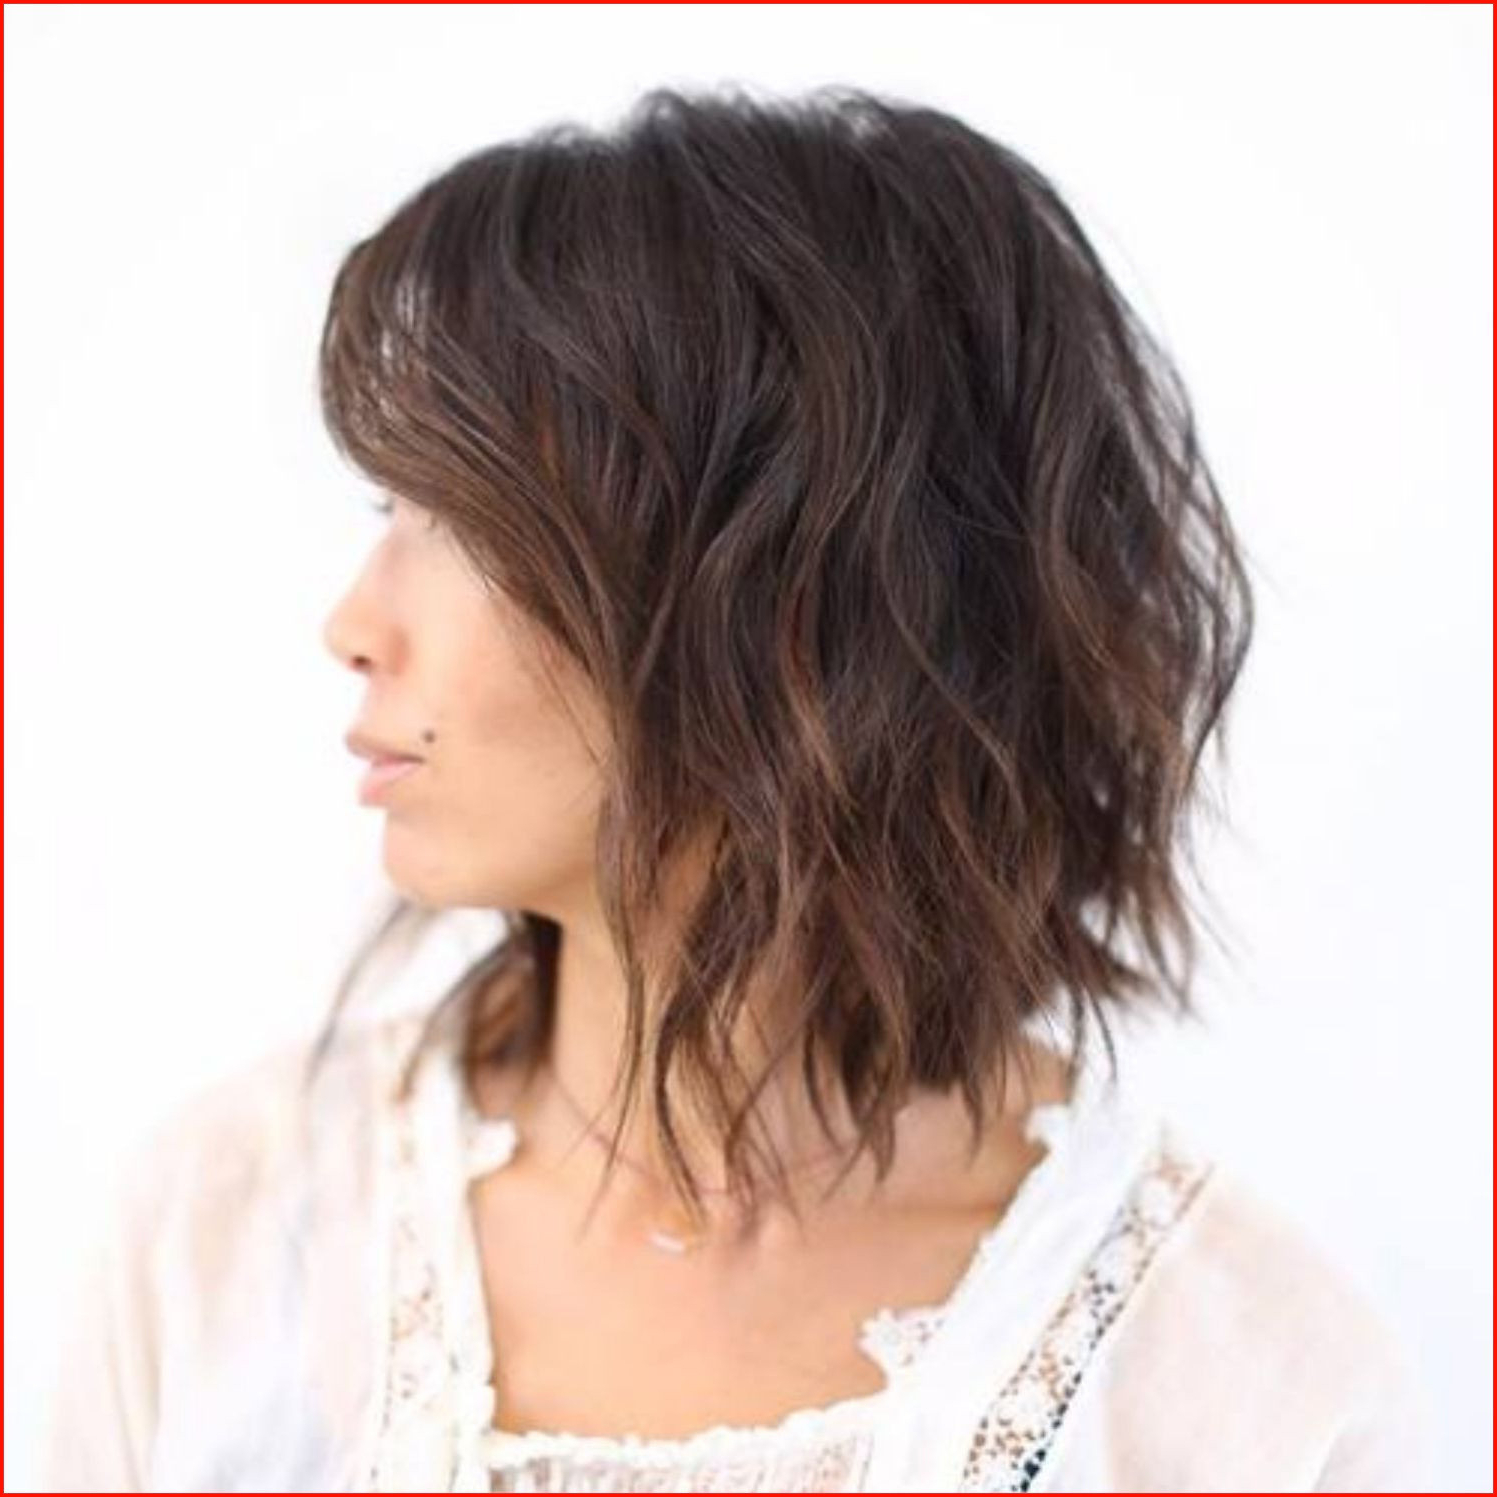 Amazing Medium Hairstyles Bobs Collection Of Bob Hairstyles Throughout Shoulder Length Choppy Hairstyles (View 15 of 20)